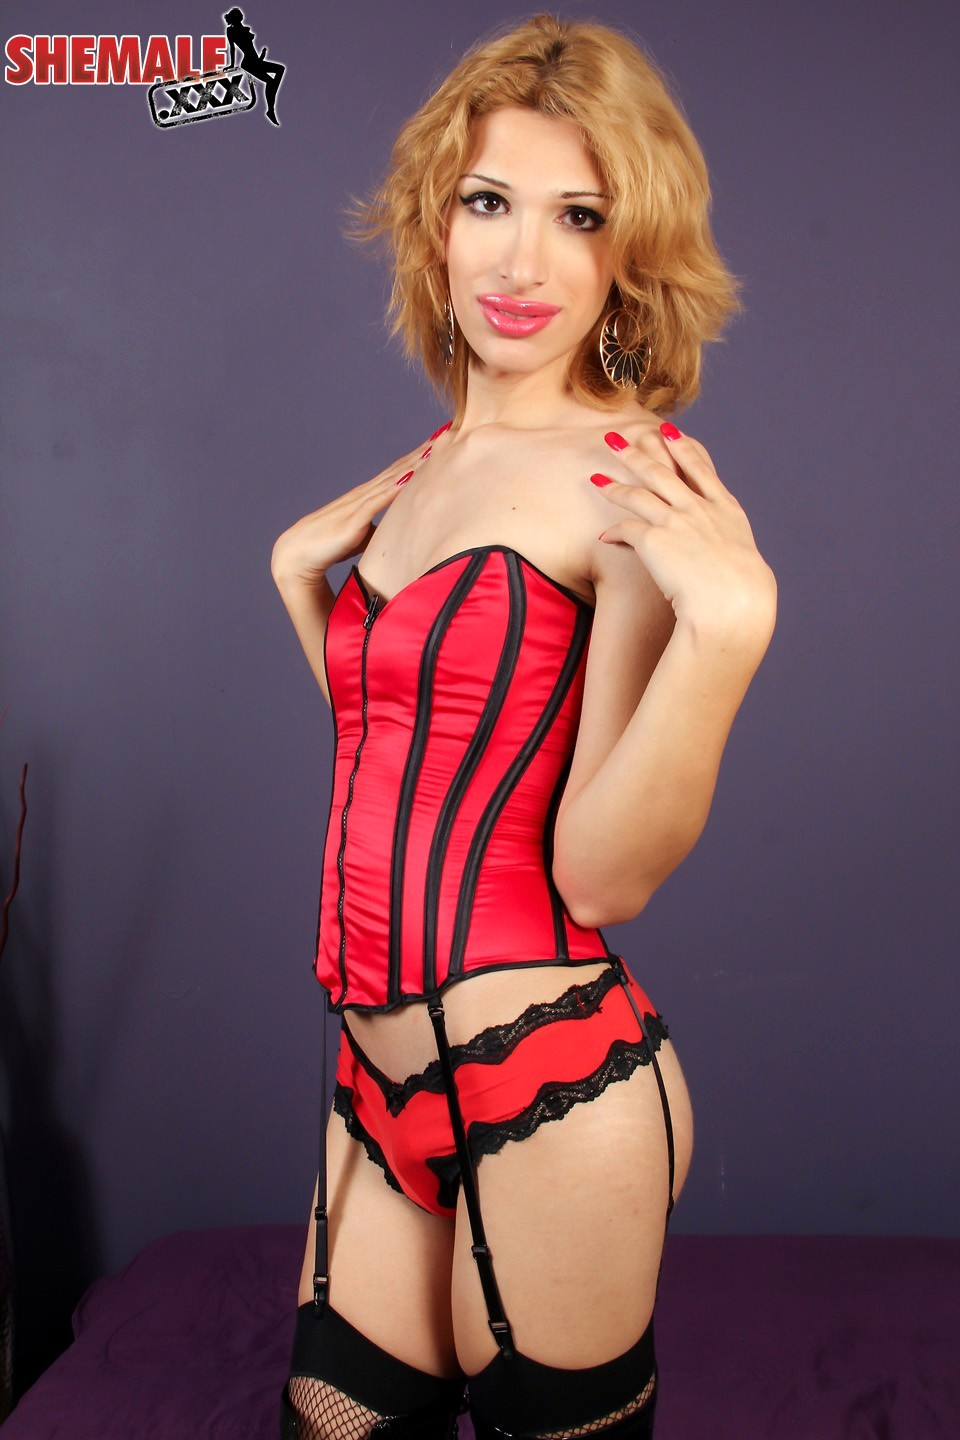 spicy alexis posing in red corset